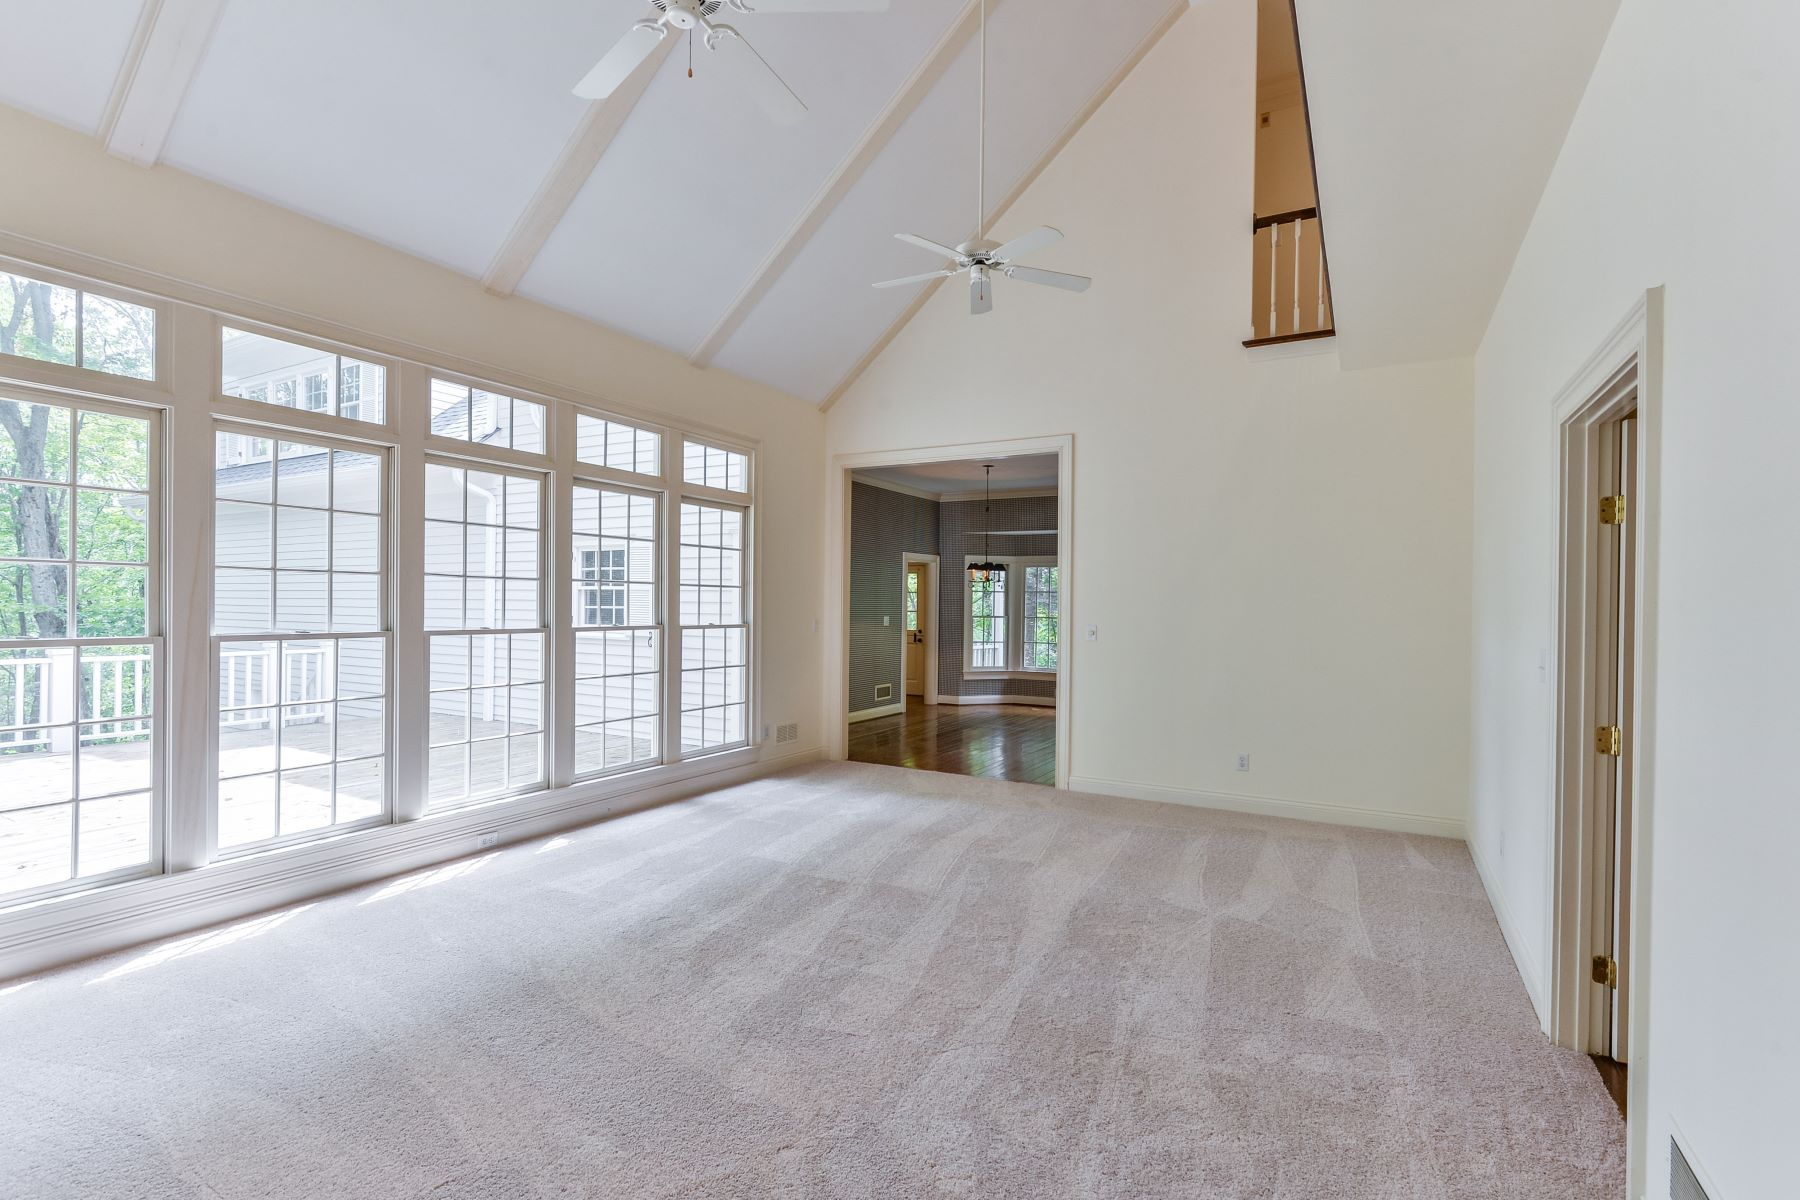 Additional photo for property listing at 11600 Chapel Hill Road  Prospect, Kentucky 40059 United States